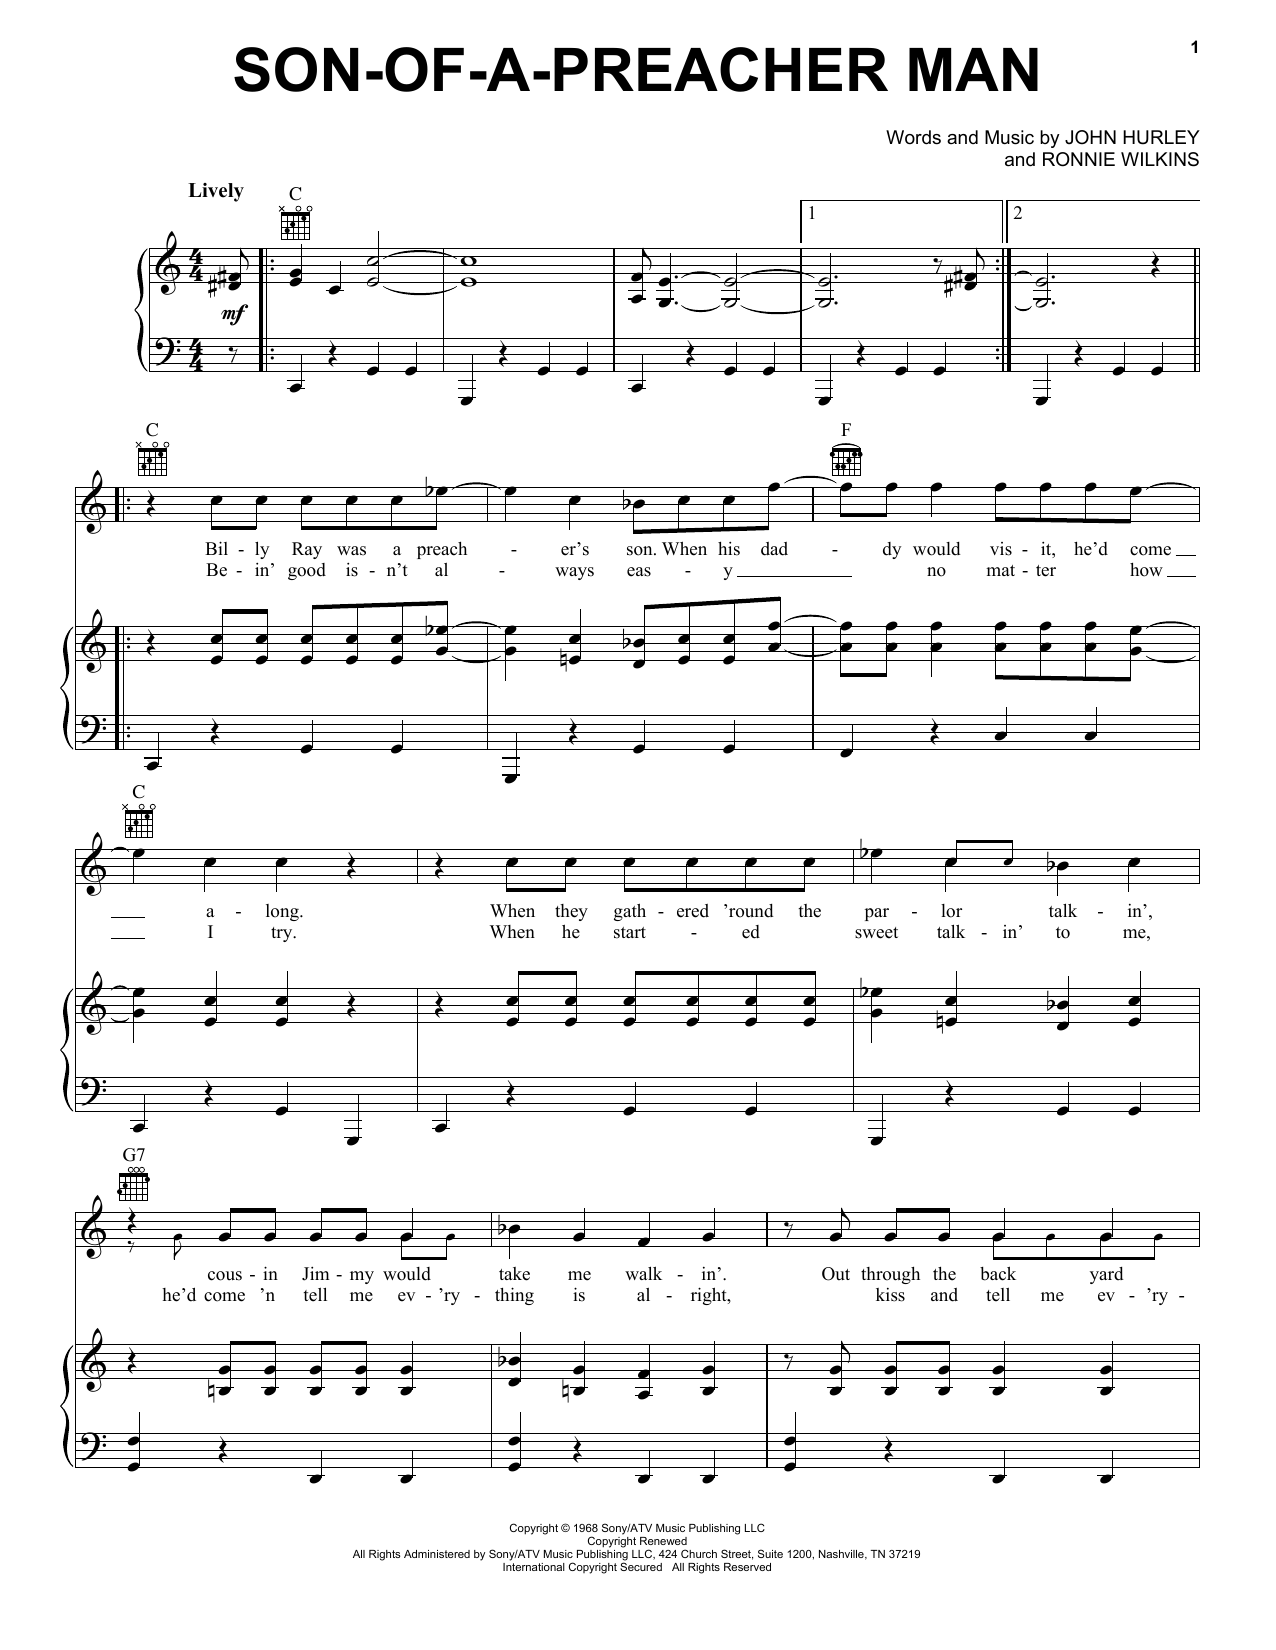 Son-Of-A-Preacher Man Sheet Music